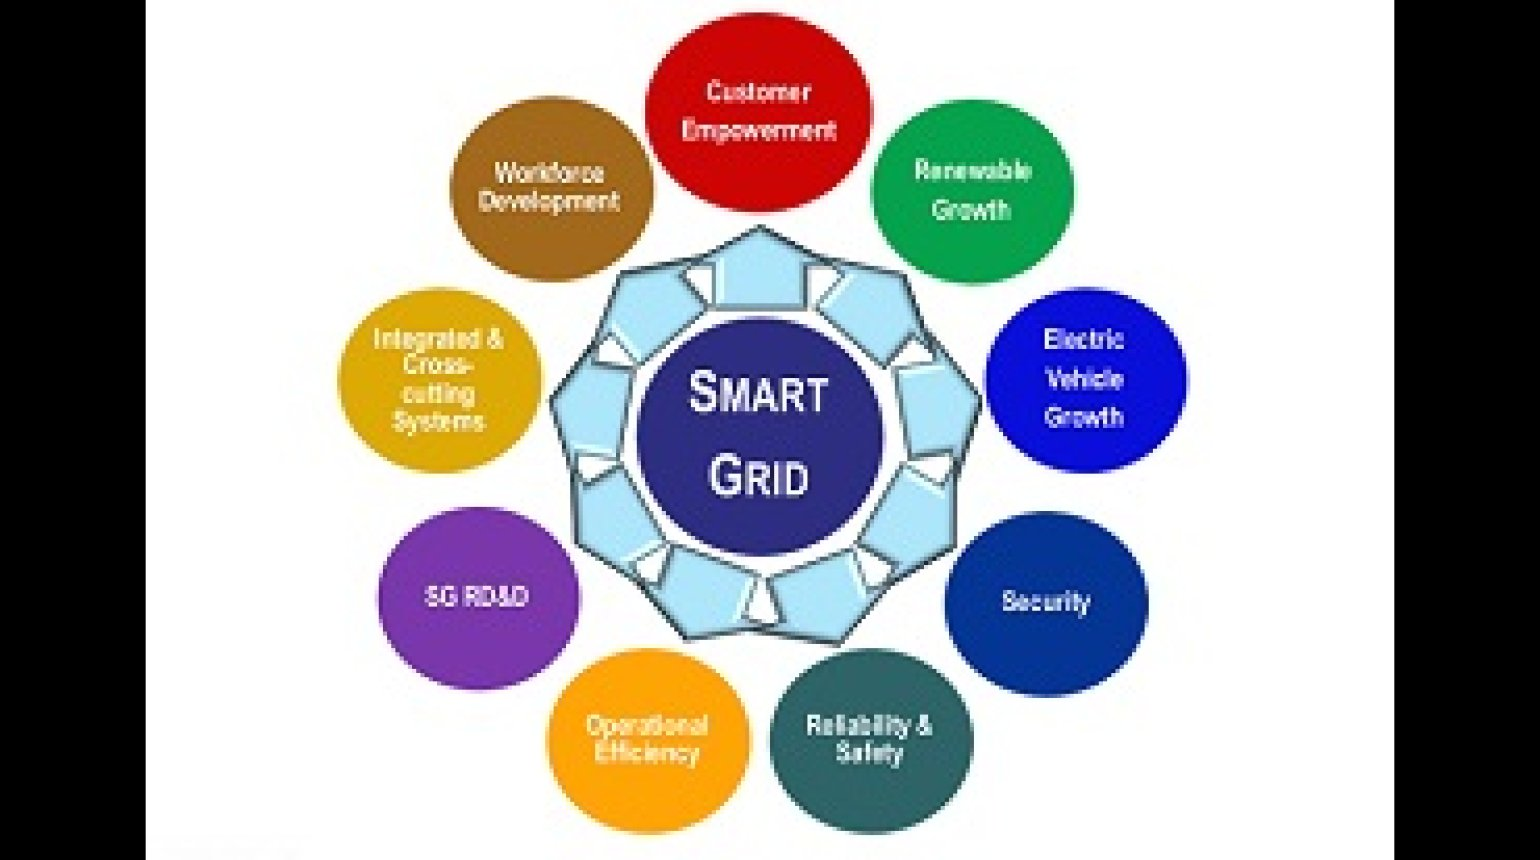 Smart Grid: Concepts, Solutions, Standards, Policy, Recent Deployments and Lessons with John Mc Donald